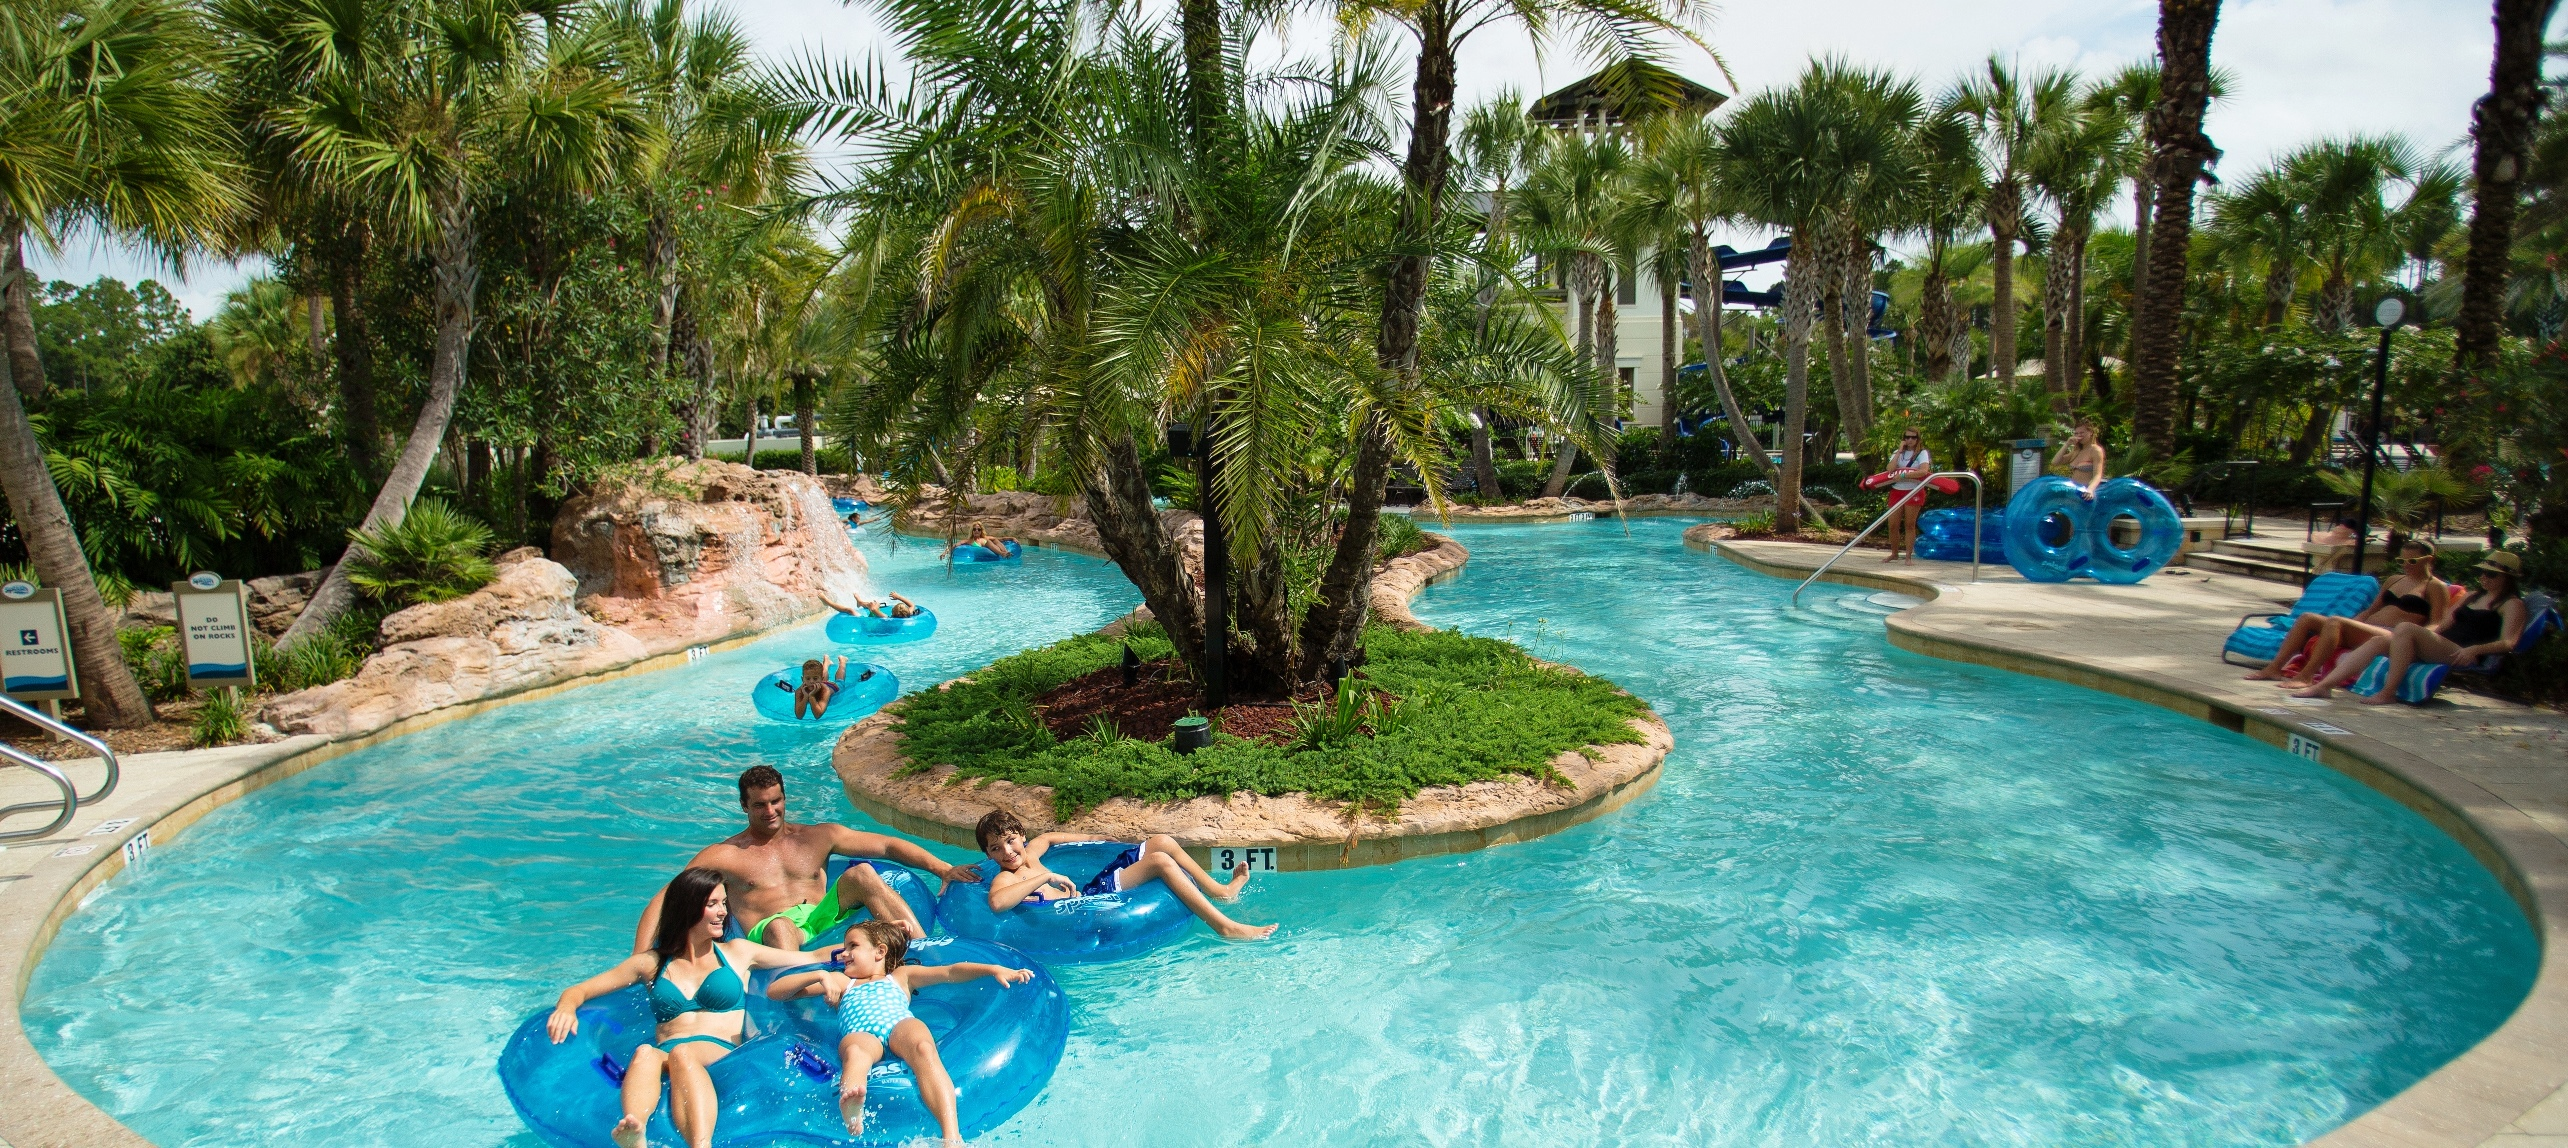 Lazy Tides River at Nocatee's Splash Water Park